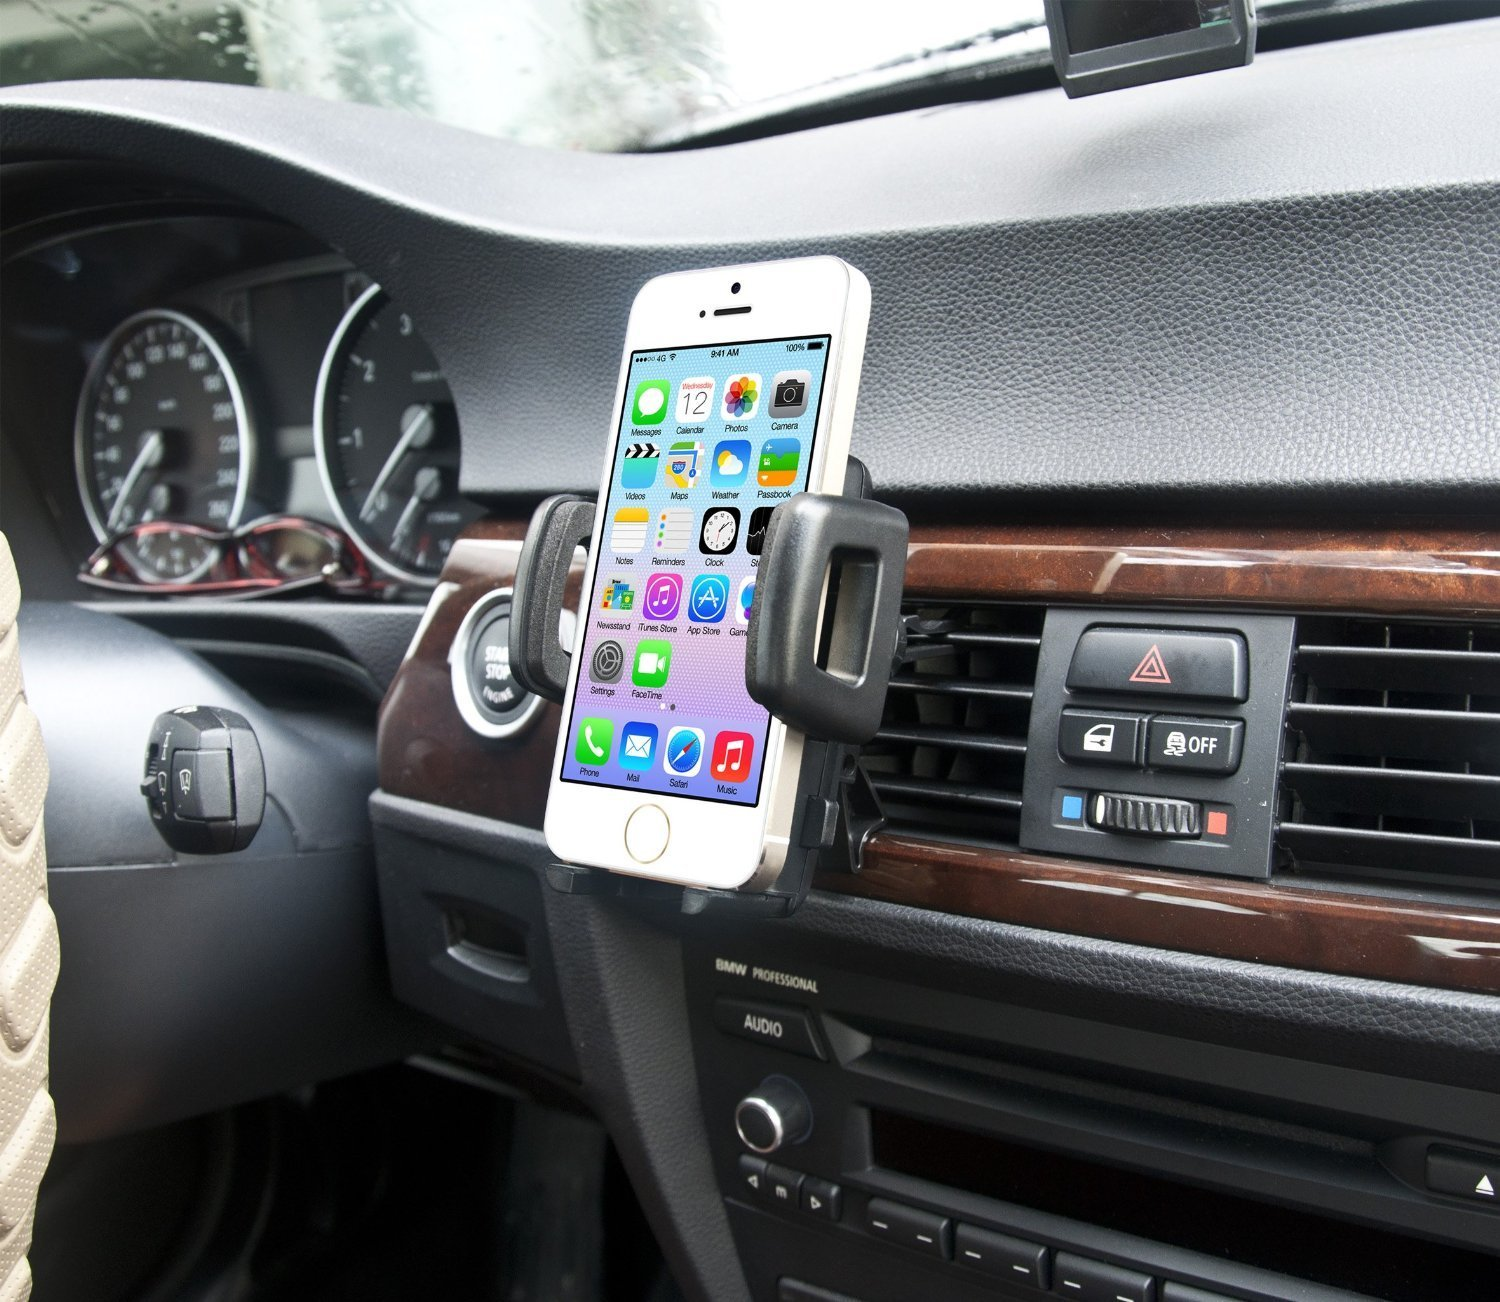 IBRA Dedicated Air Vent Car Holder Mount Black Vehicle Louvers Phone Cradle Mount For Apple Iphone 6 / 6 Plus / 5 / 4 / 4s / 3G / 3 and IPOD series 2015 Model